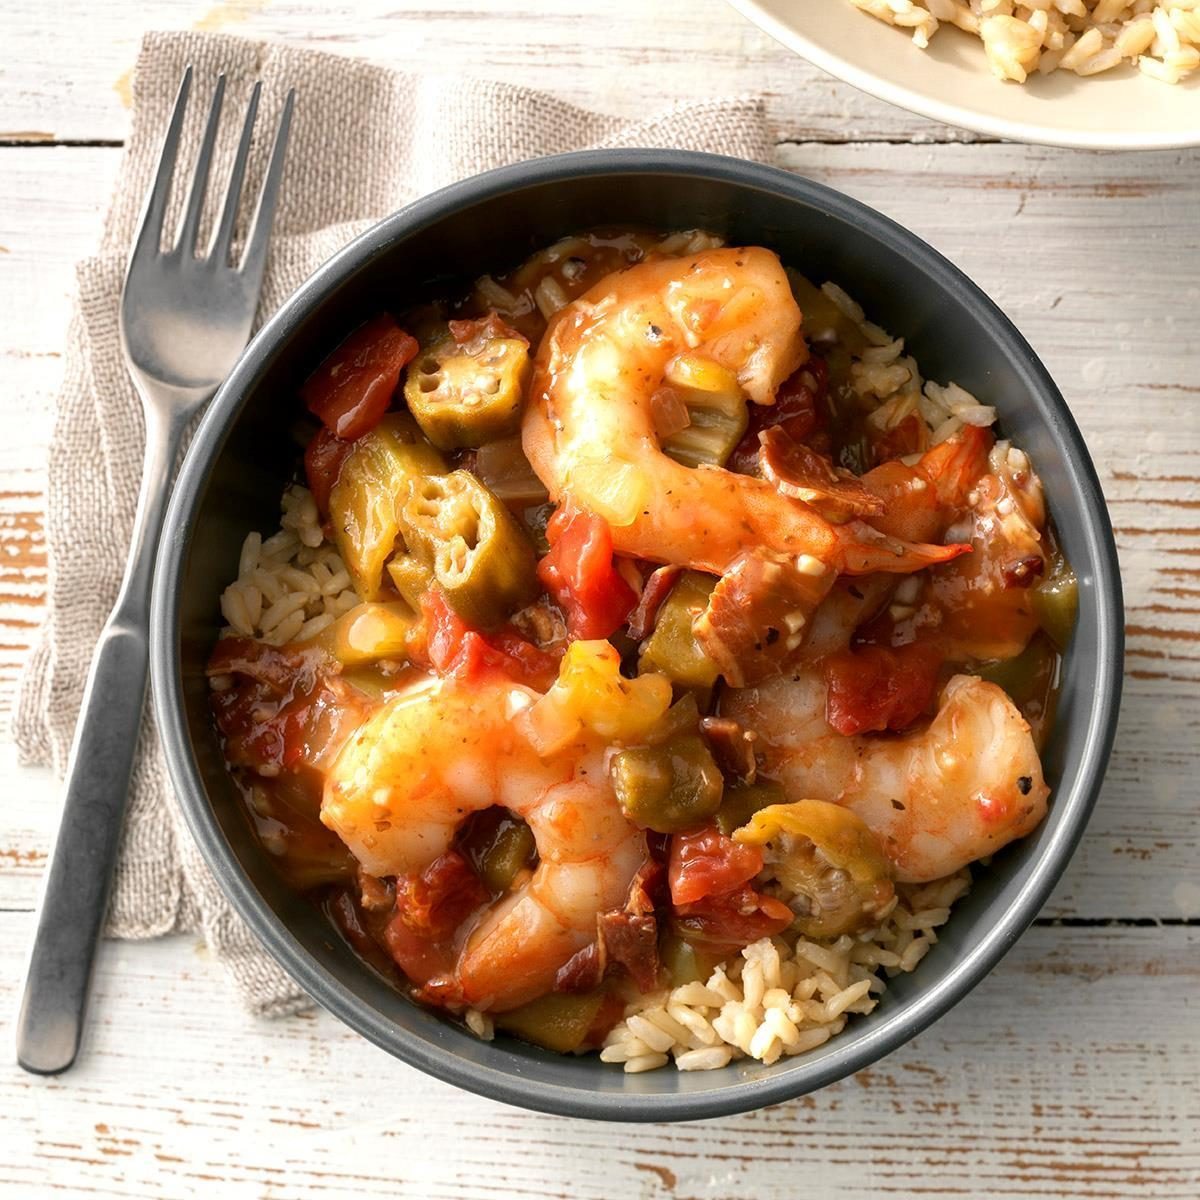 October 12: National Gumbo Day